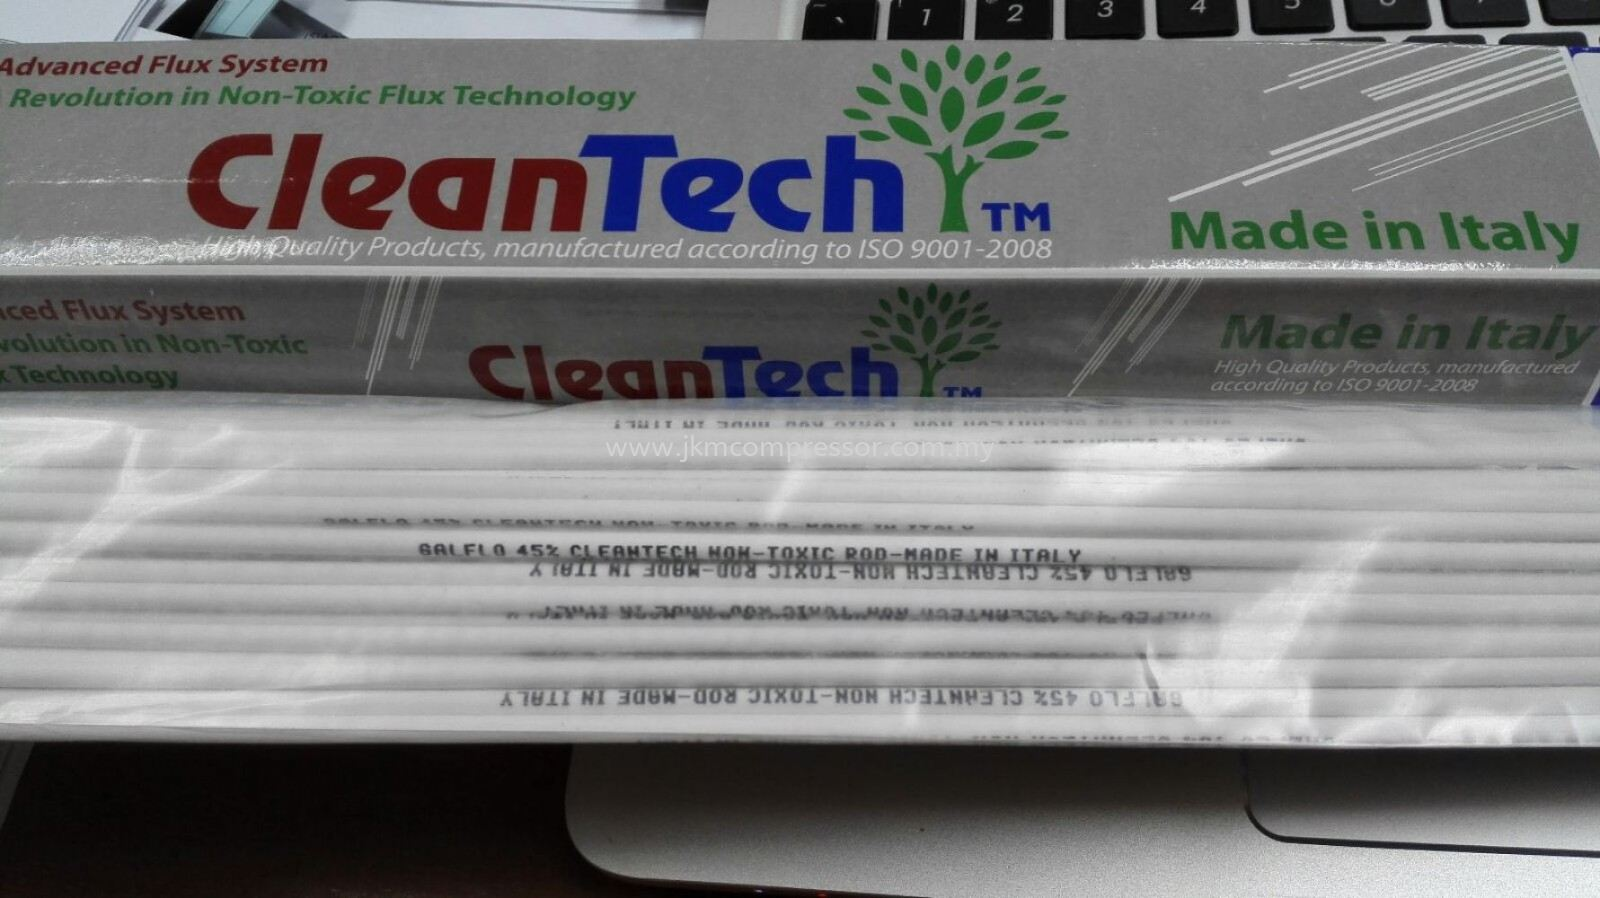 GALFLO 45% CLEANTECH NON-TOXIC FLUX COATED ROD